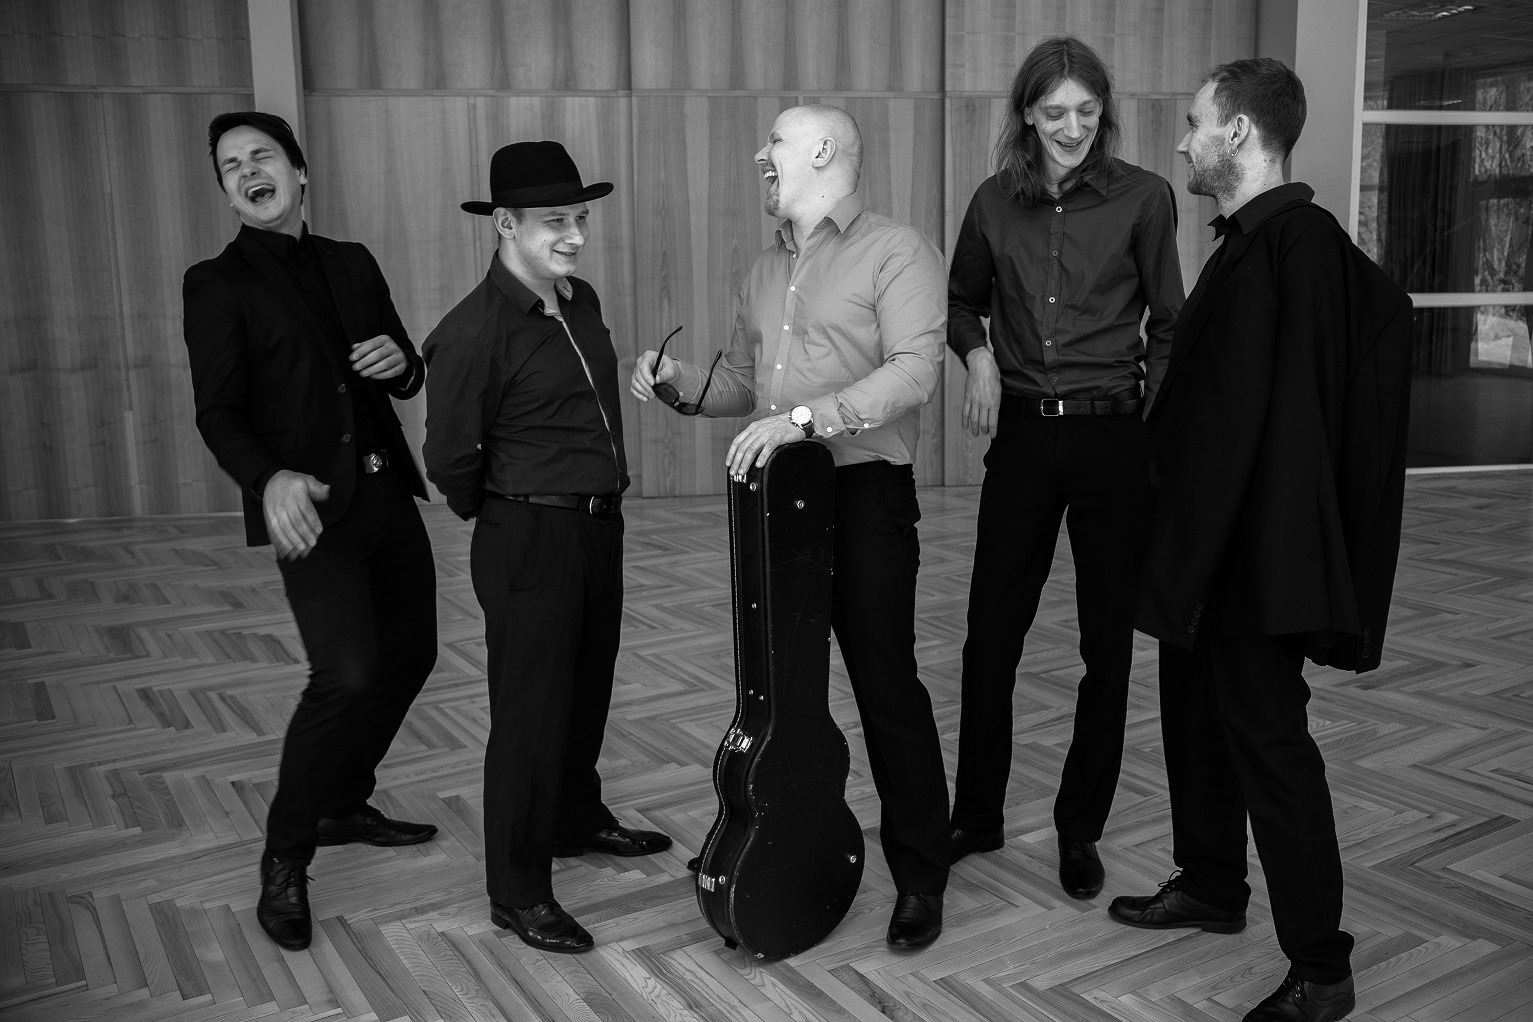 Latvian Blues Band am 7. September 2020 @ Rockhouse Salzburg.